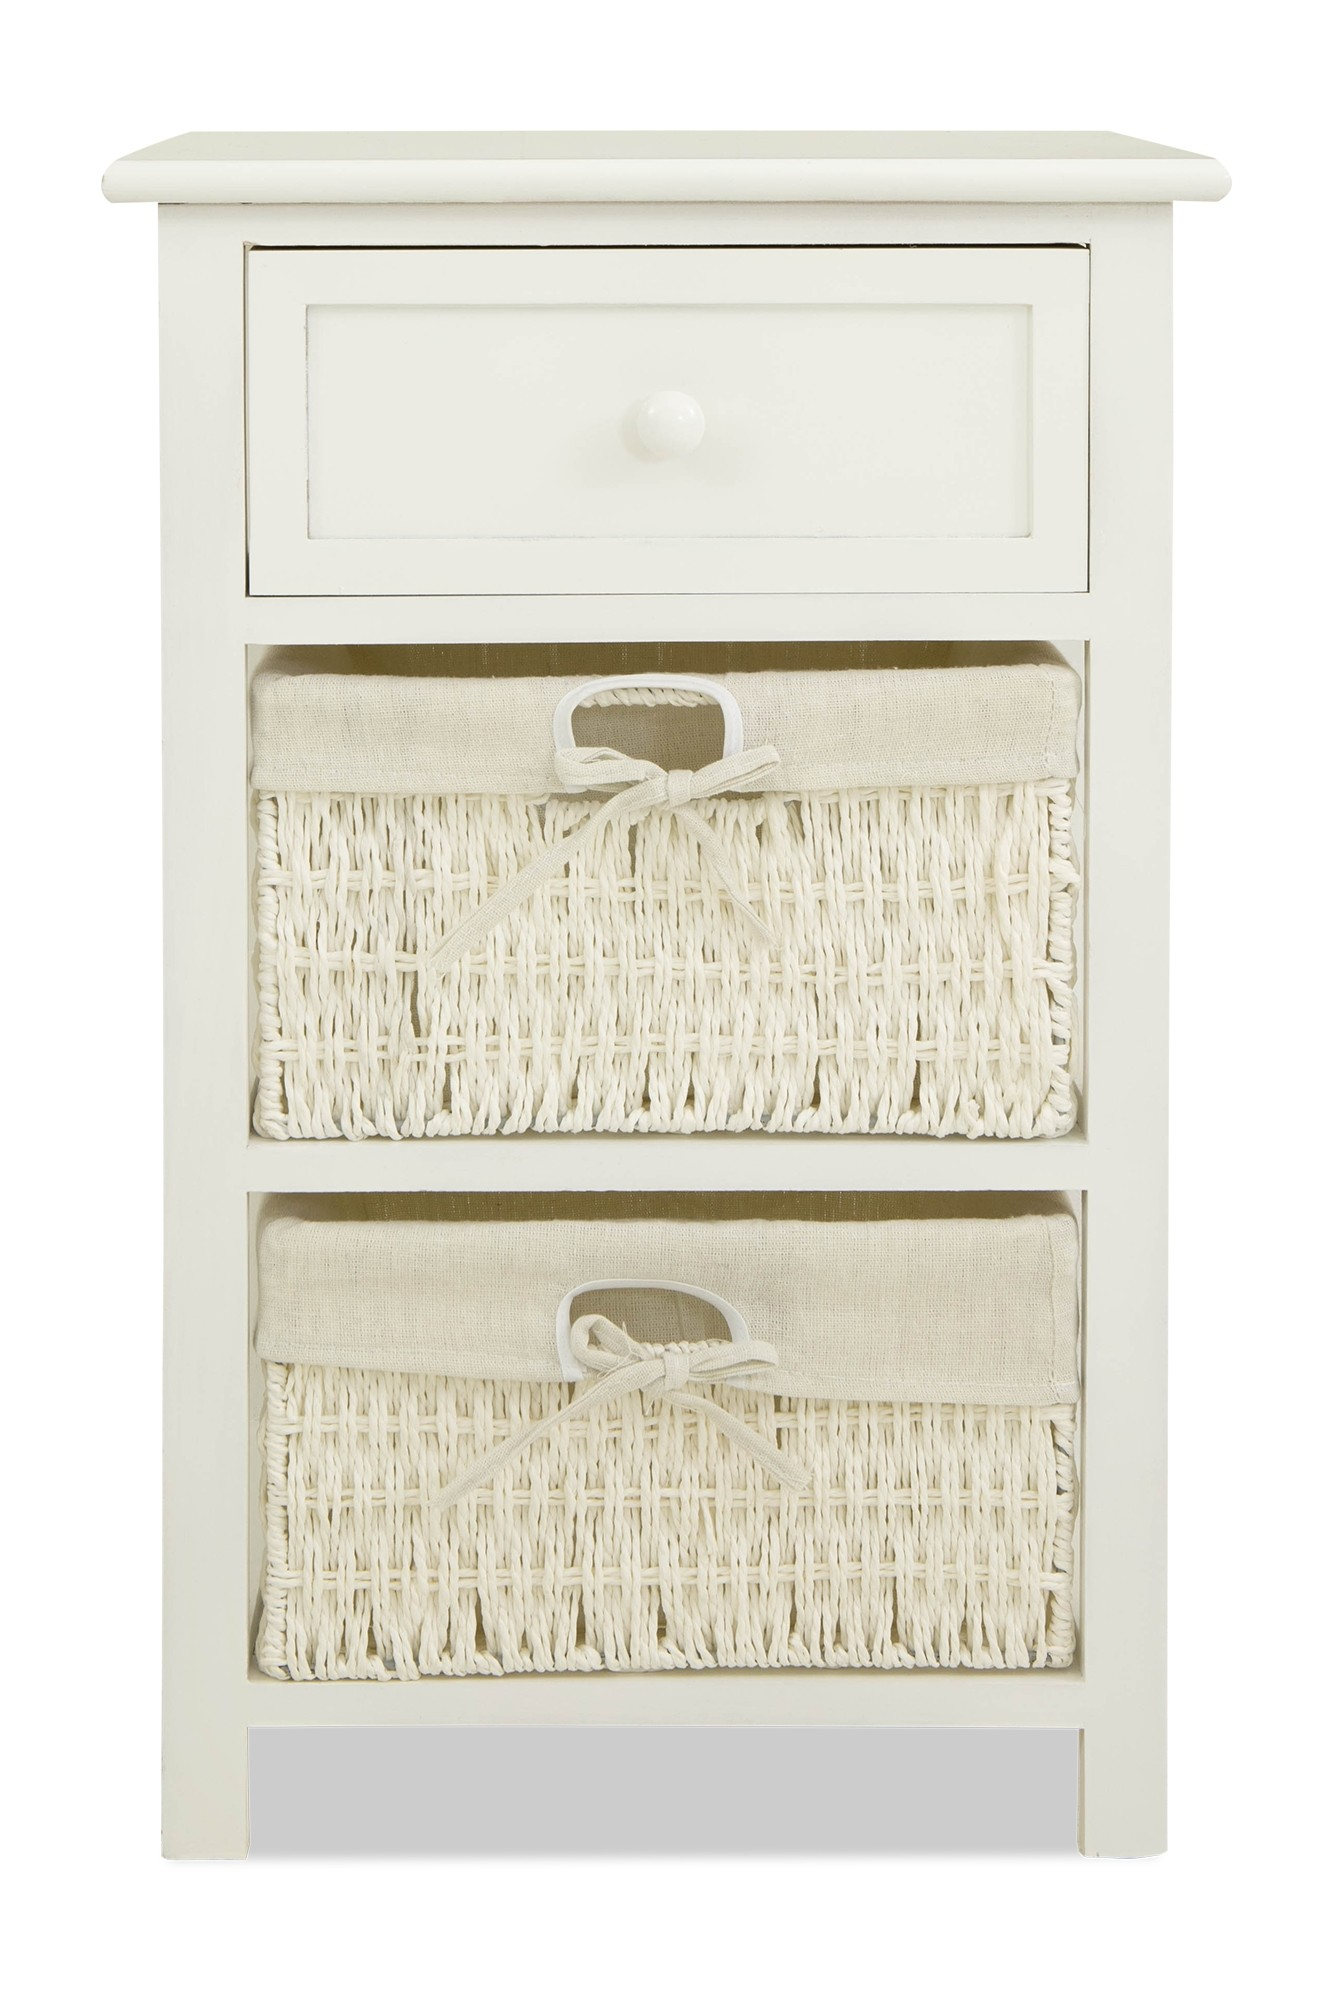 Aetti Wicker Basket Wooden Storage Cabinet White